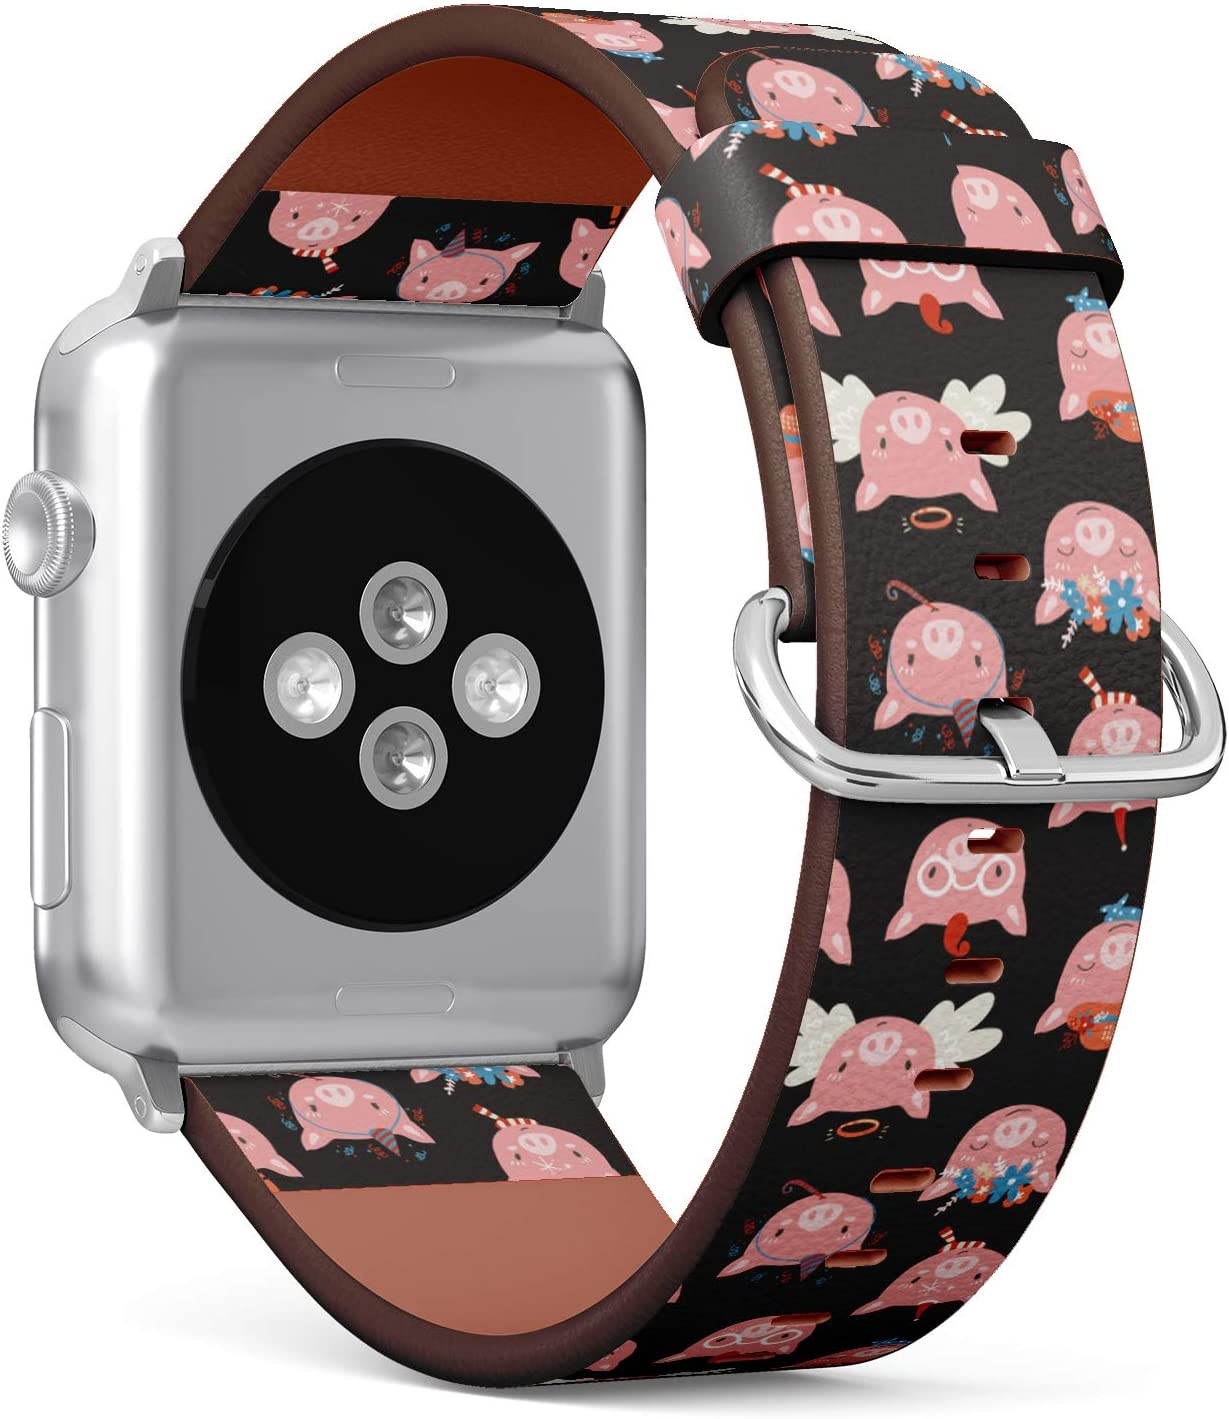 S-Type Leather Bracelet Watch Band Strap Replacement Wristband Compatible with Apple Watch 4/3/2/1 Sport Series 38mm 40mm 42mm 44mm - Cute Cartoon?Pattern with Pig Piglet Faces